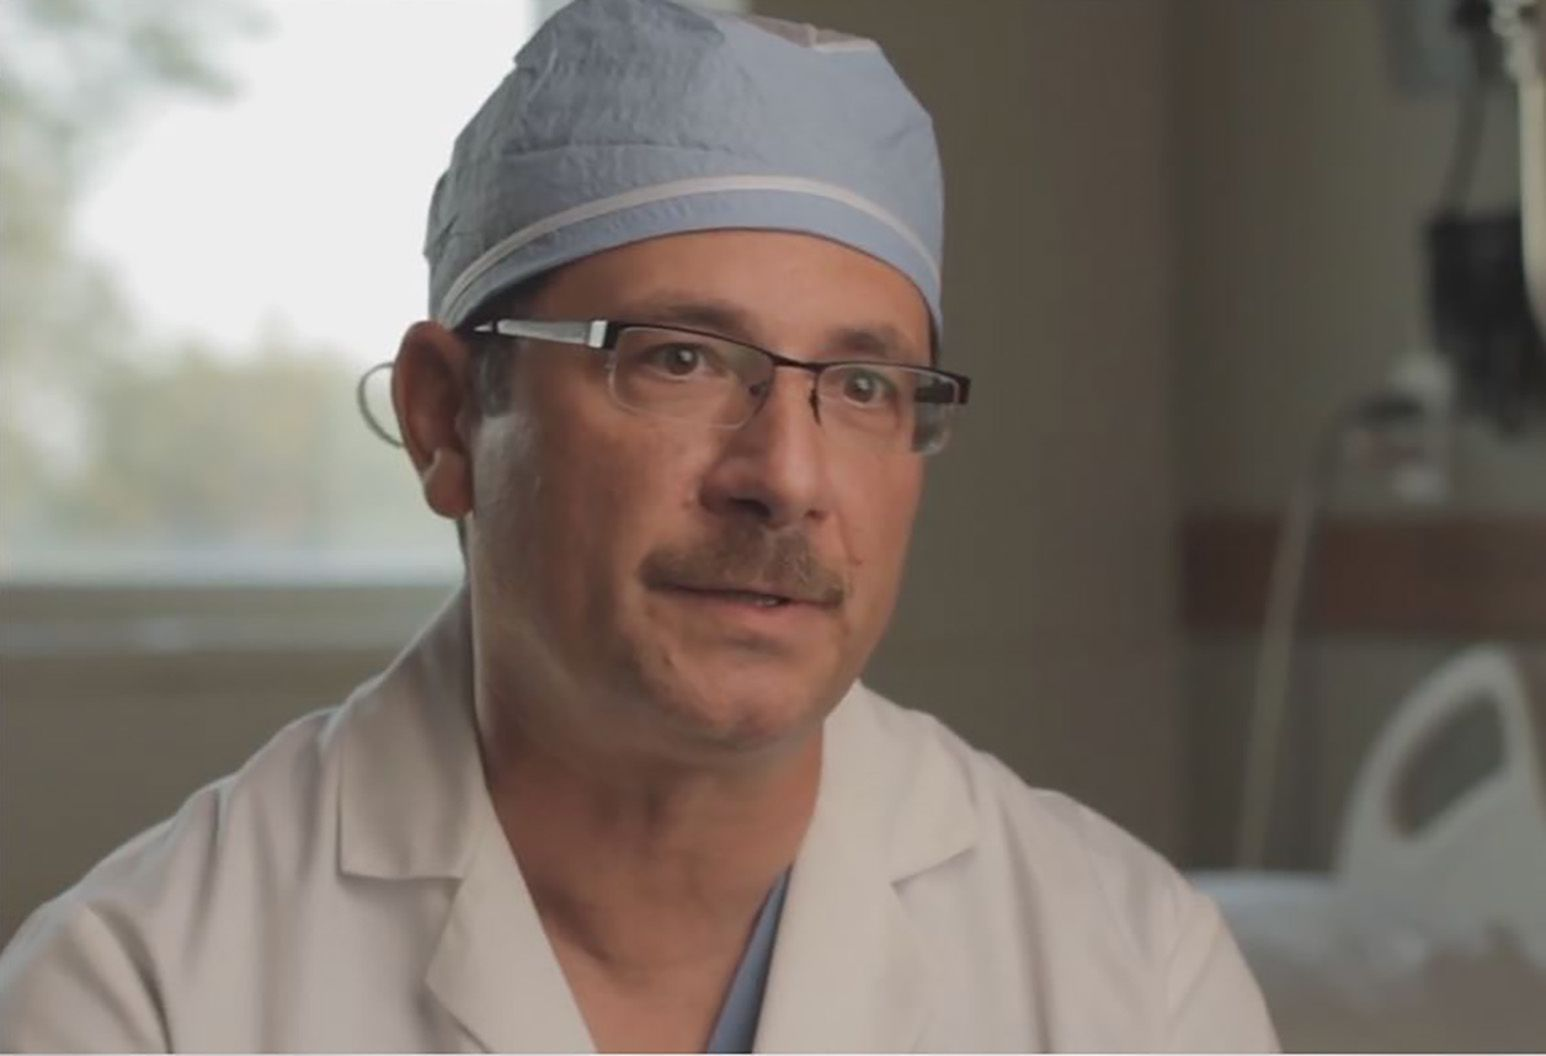 Dr. Vincent Leone wears a white lab coat, blue surgical hat and glasses and looks at the camera, about to speak.